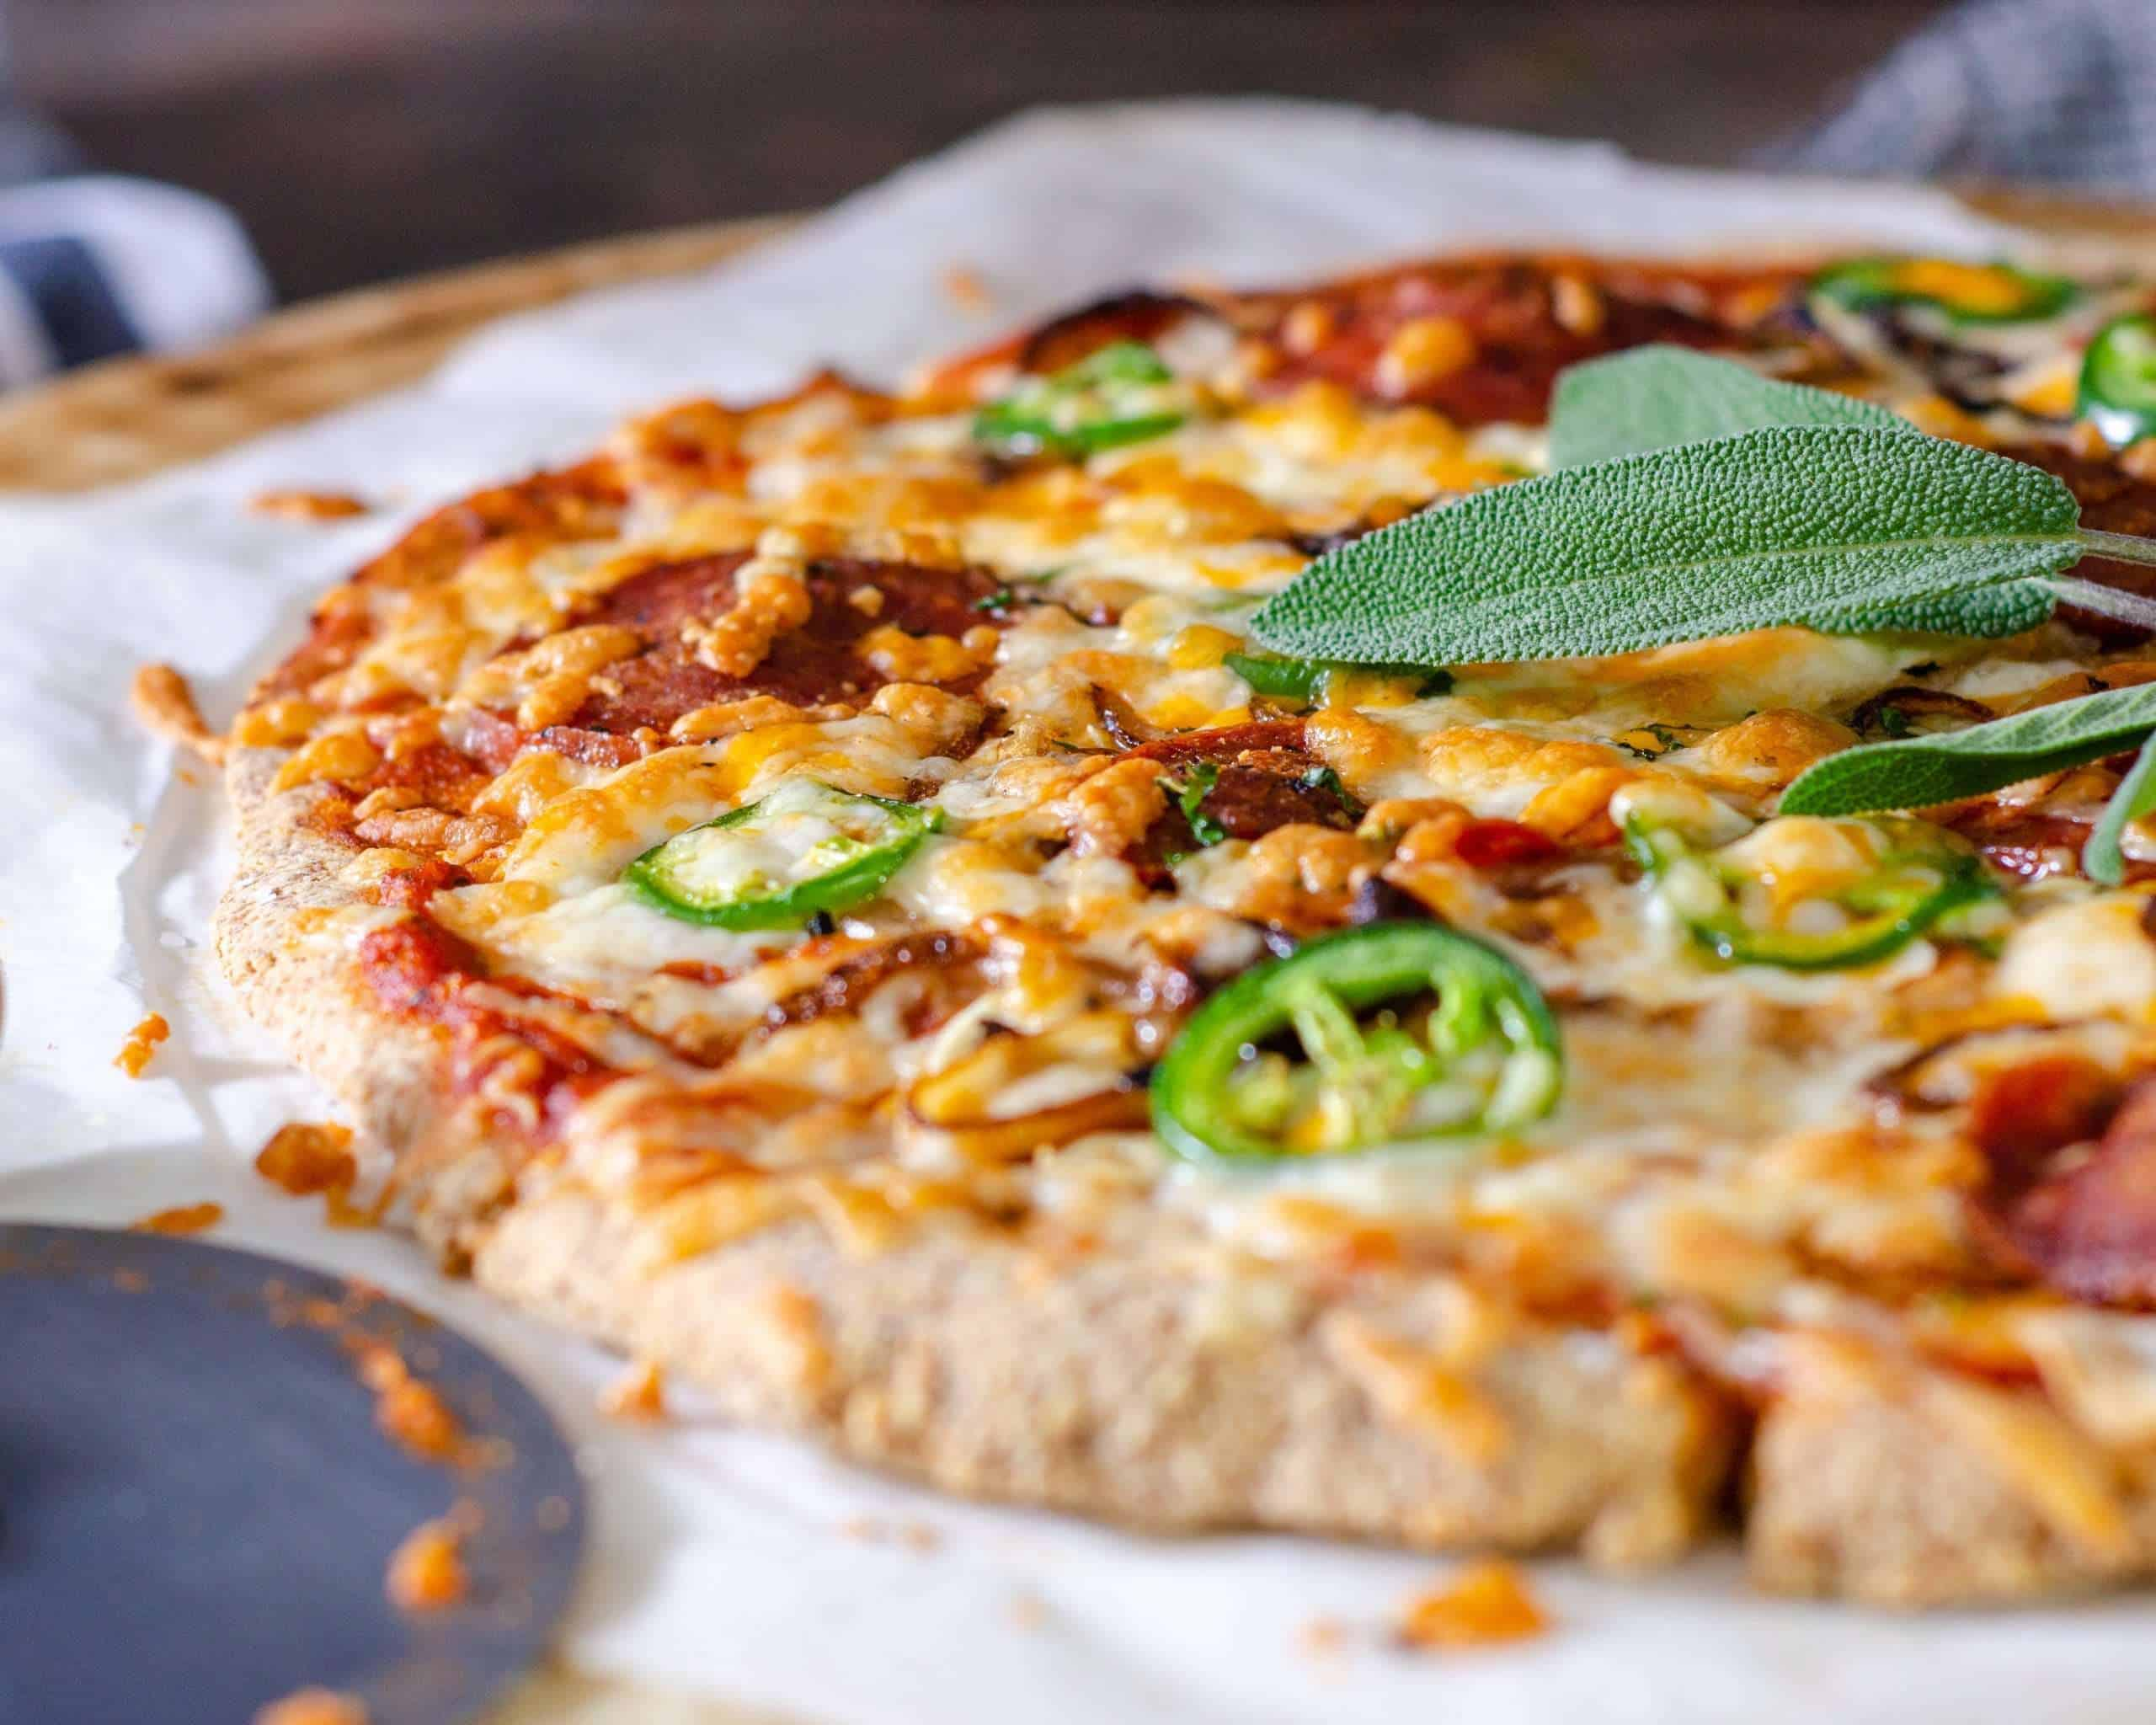 Low carb pizza fresh from the oven